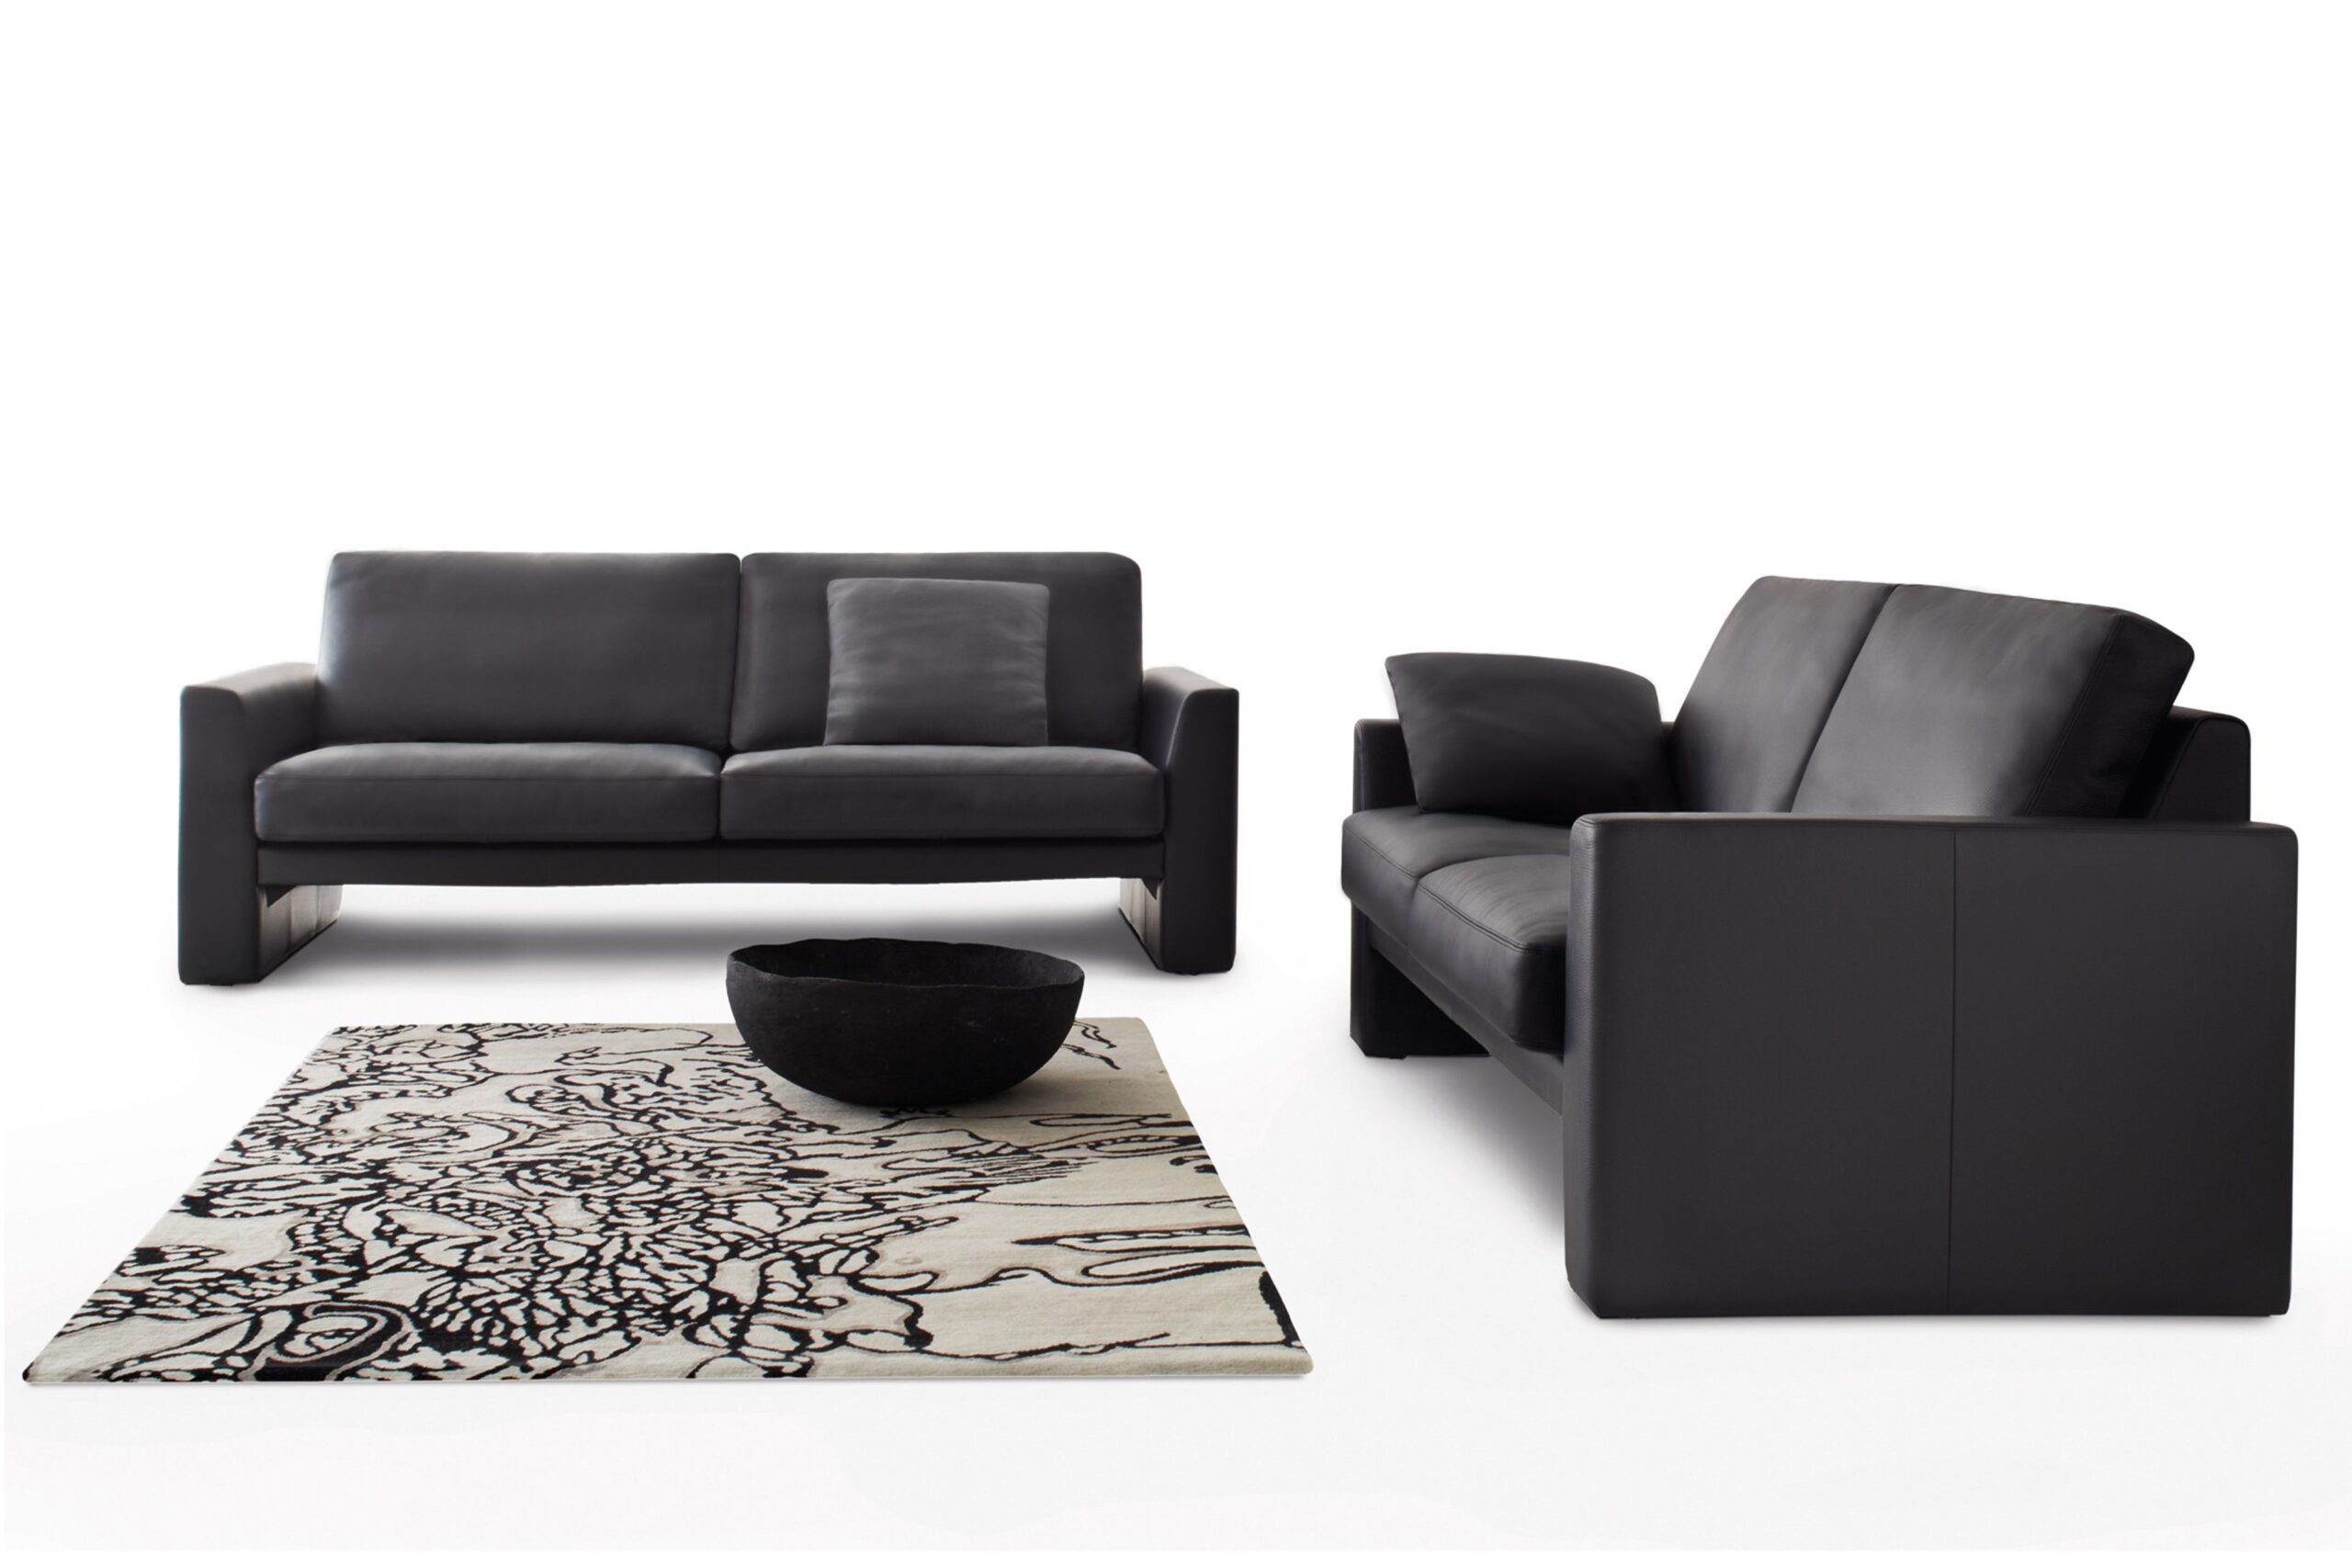 Full Size of Erpo Sofa Mbelwerk Cl 100 Ledergarnitur In Schwarz Mbel Letz Ihr Mit Relaxfunktion Kolonialstil Halbrundes Grau Stoff Stilecht Big L Form Wohnlandschaft 2 Sofa Erpo Sofa